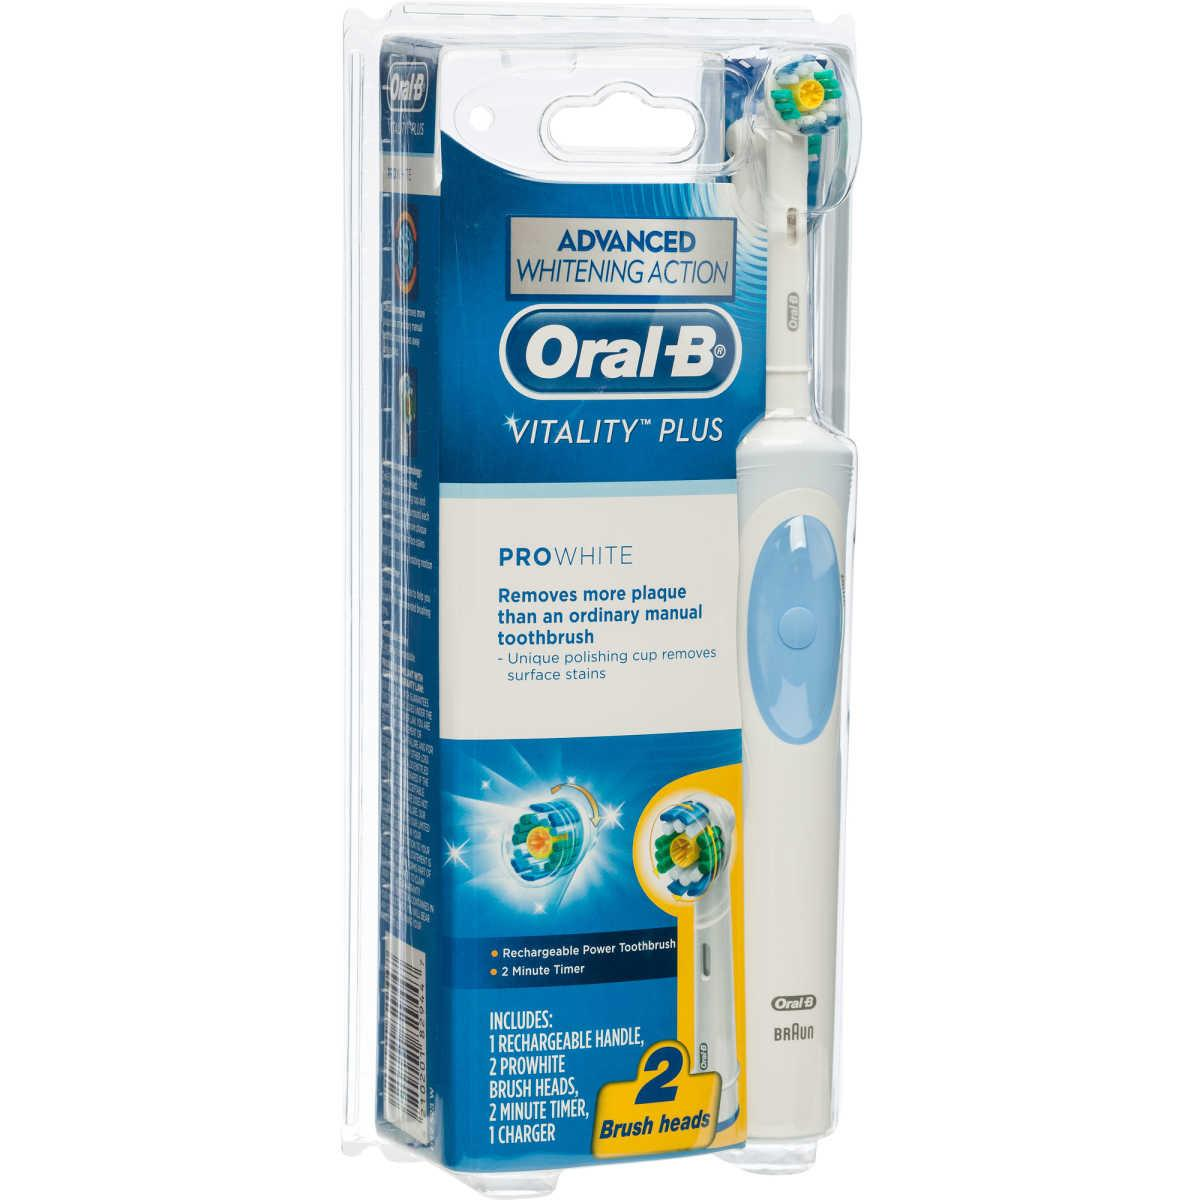 Oral-B Vitality Plus ProWhite Rechargeable Power Toothbrush